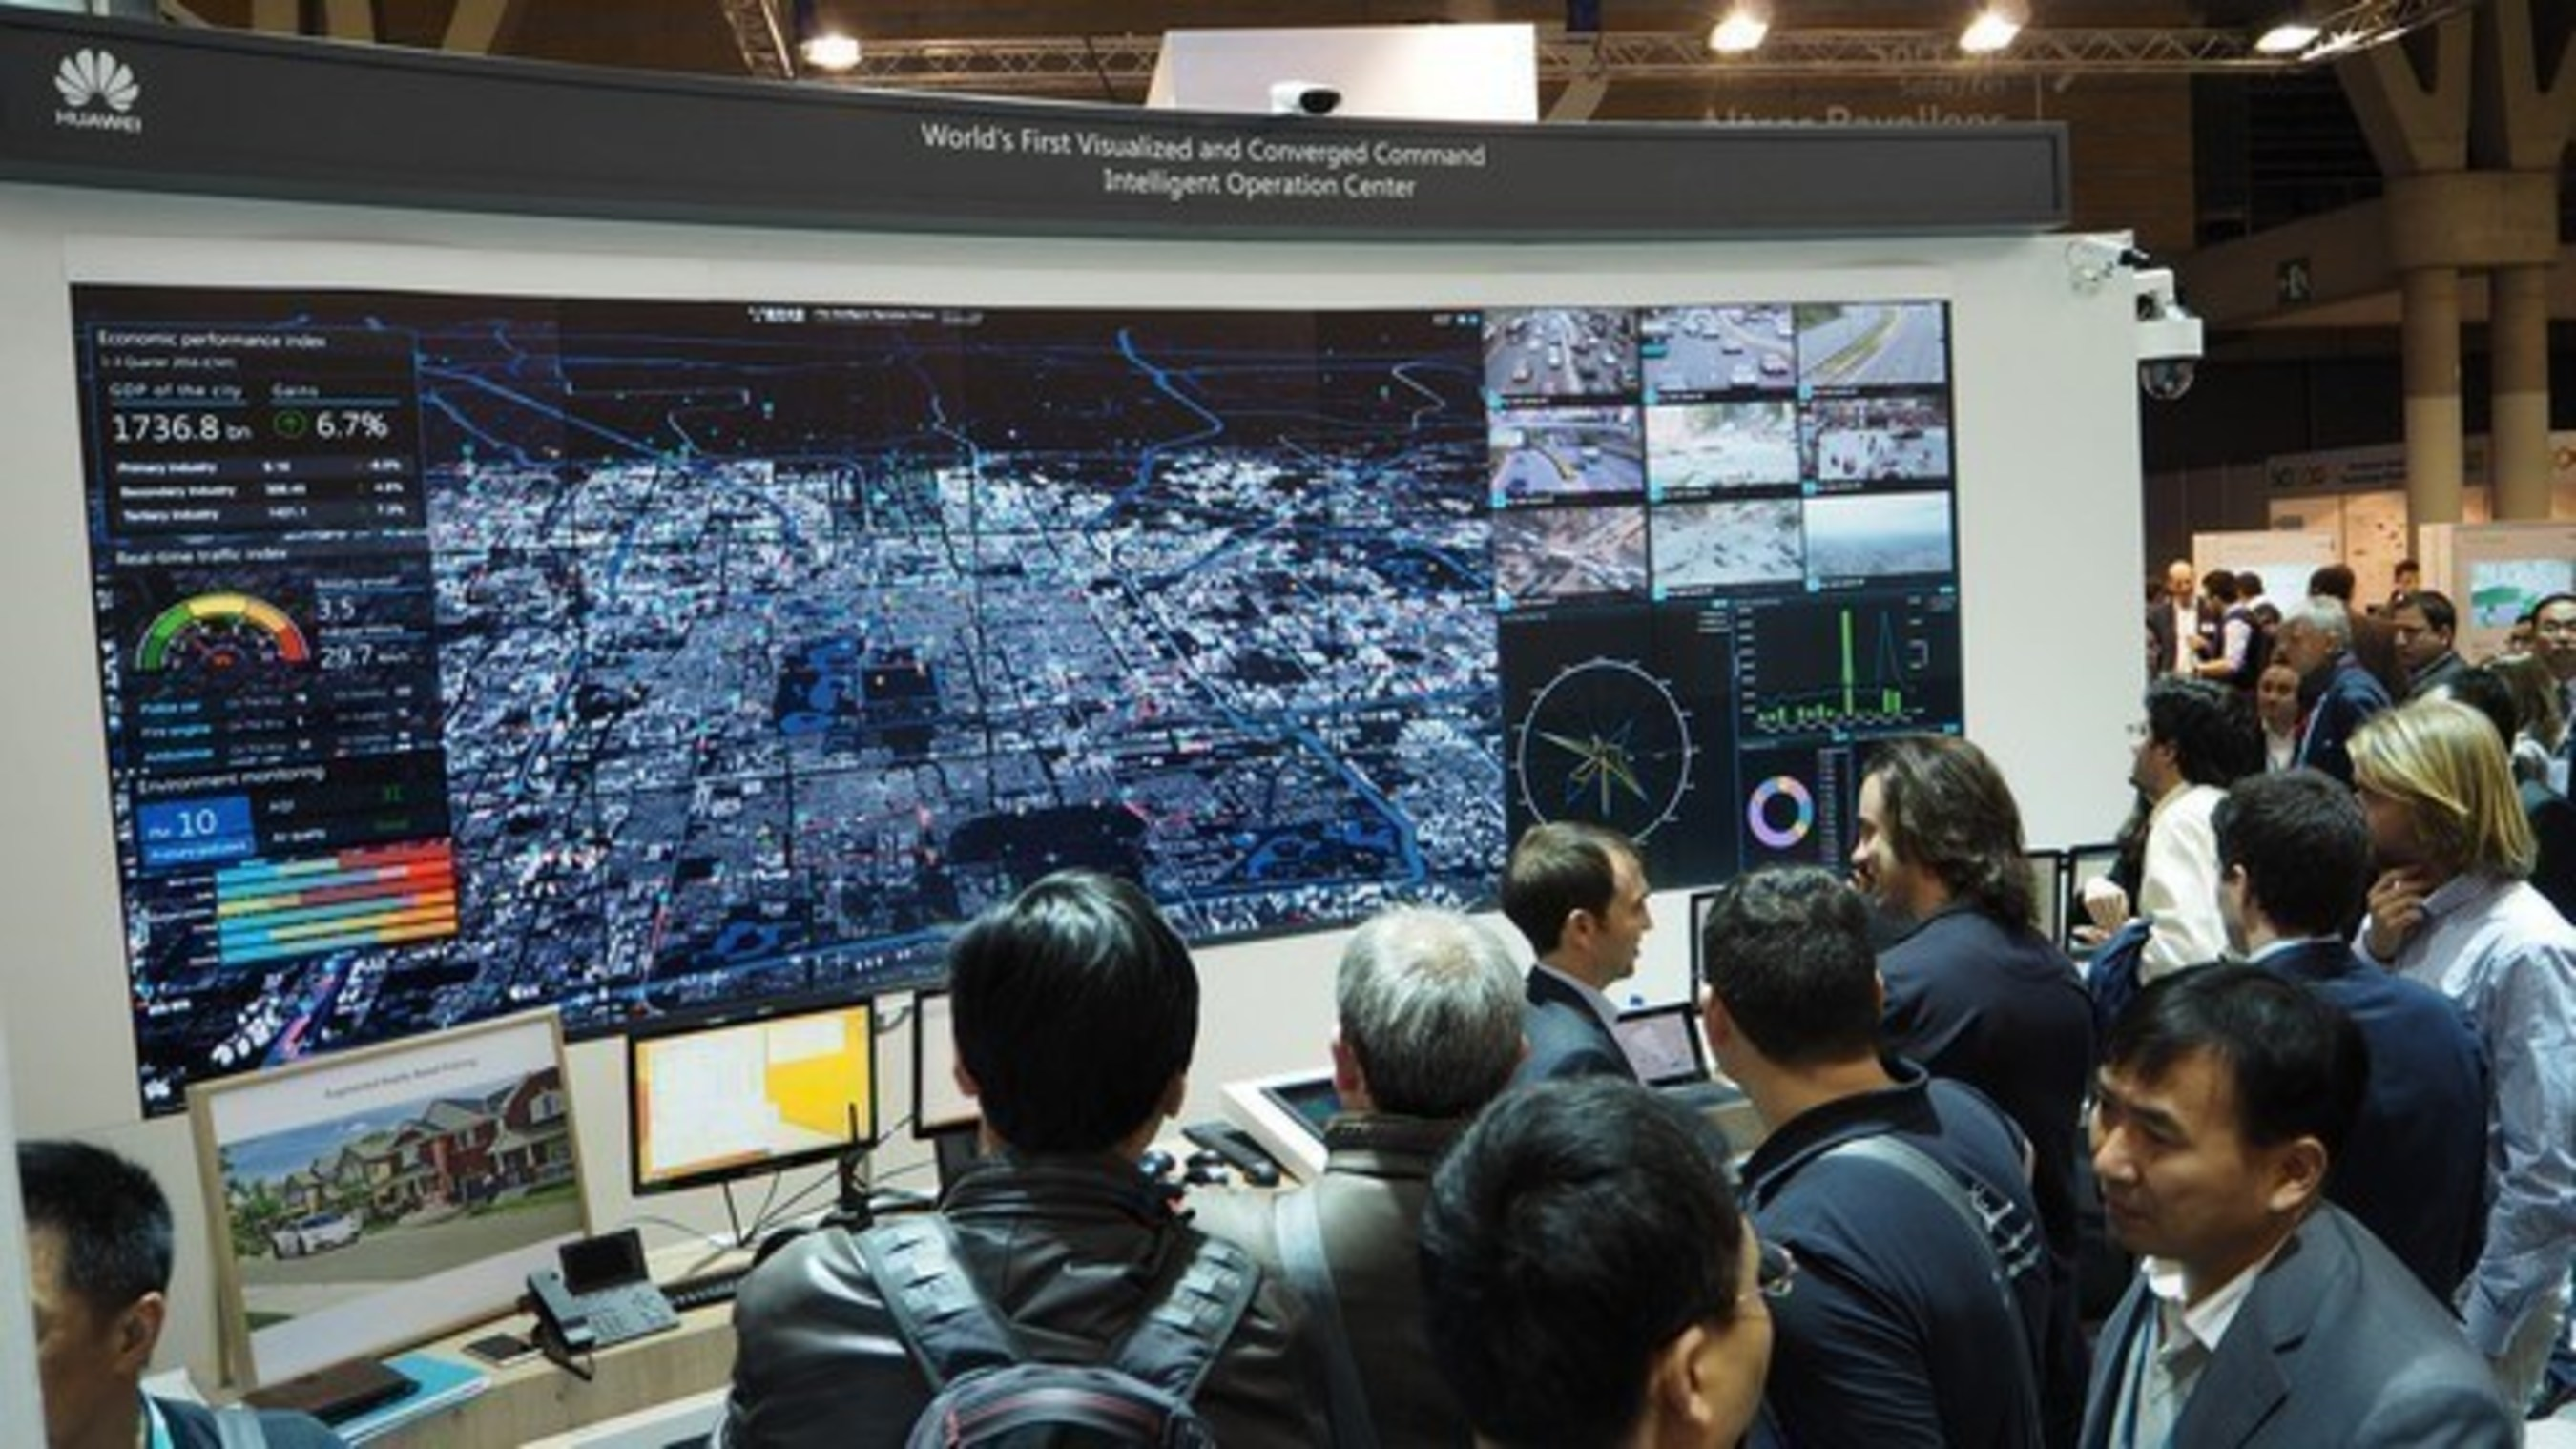 Huawei Showcases New ICT Solutions at Smart City Expo World Congress 2016